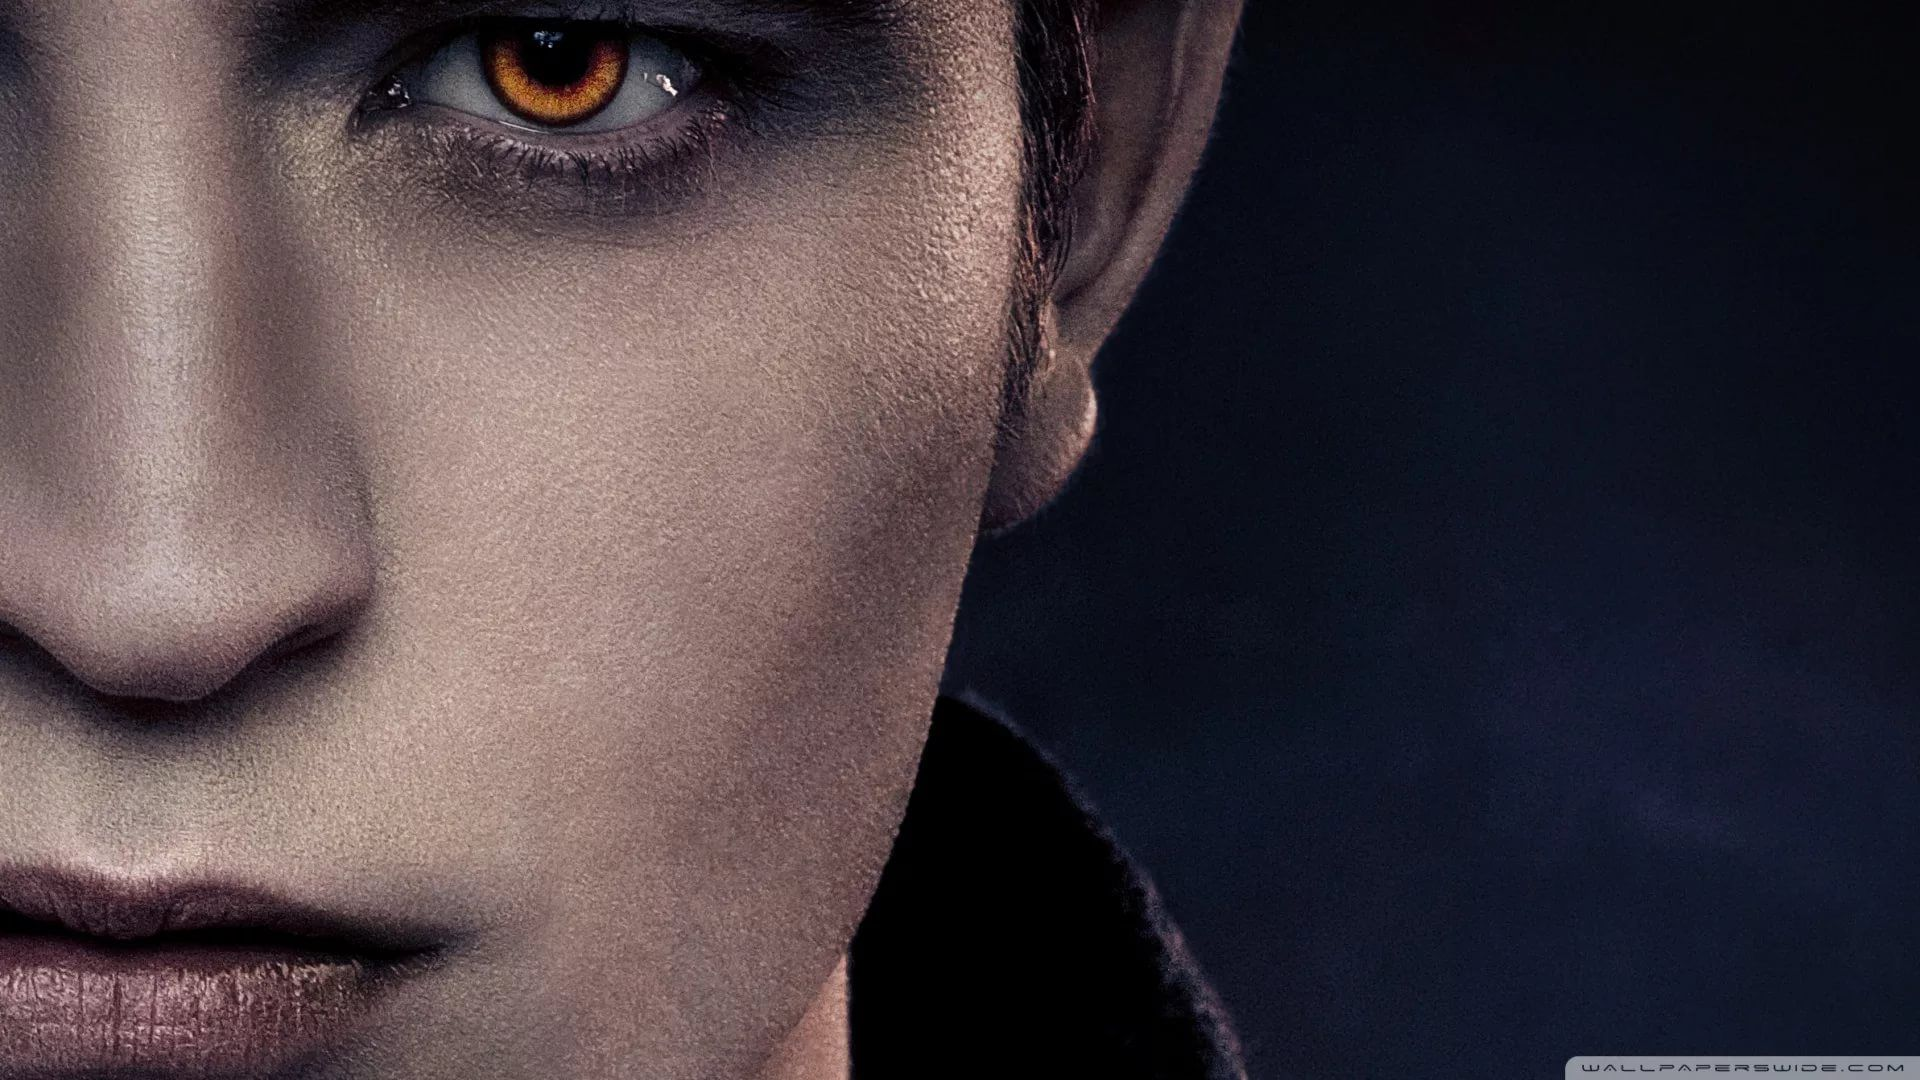 Twilight Saga 1080p Wallpaper